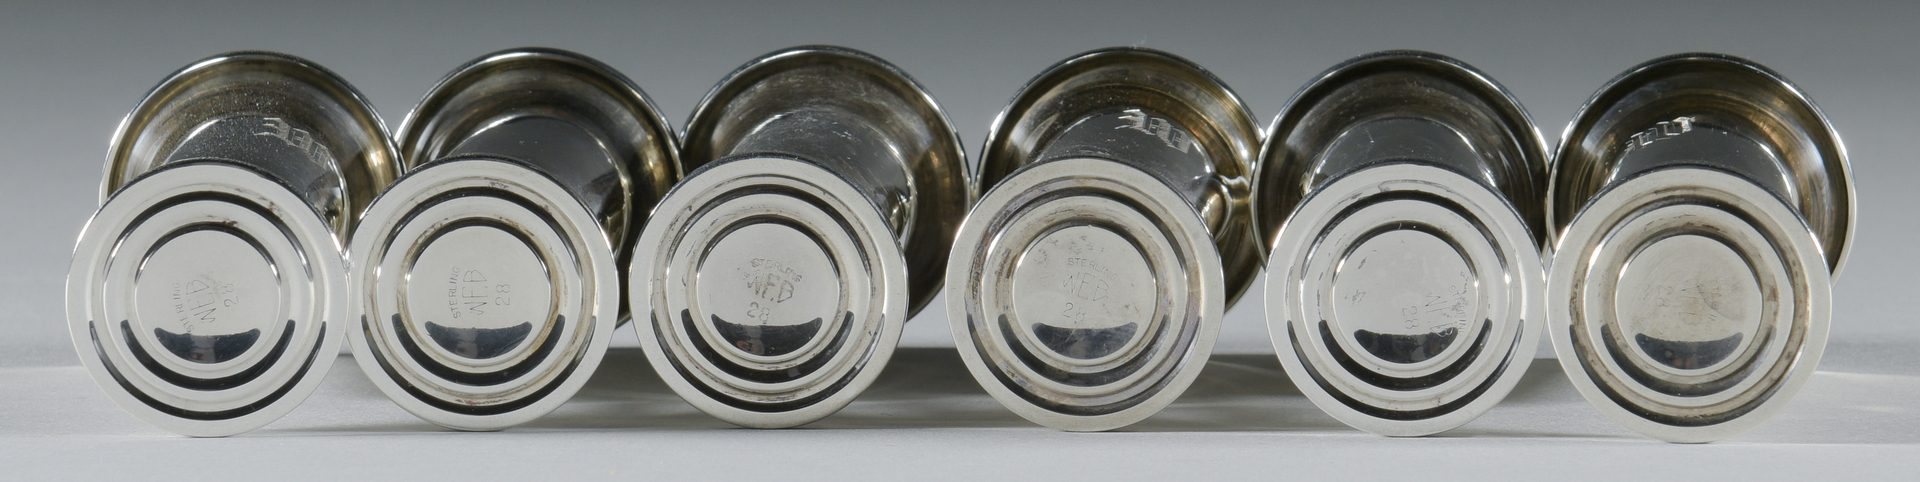 Lot 918: 8 Sterling Cordials & 2 Sterling Tumblers